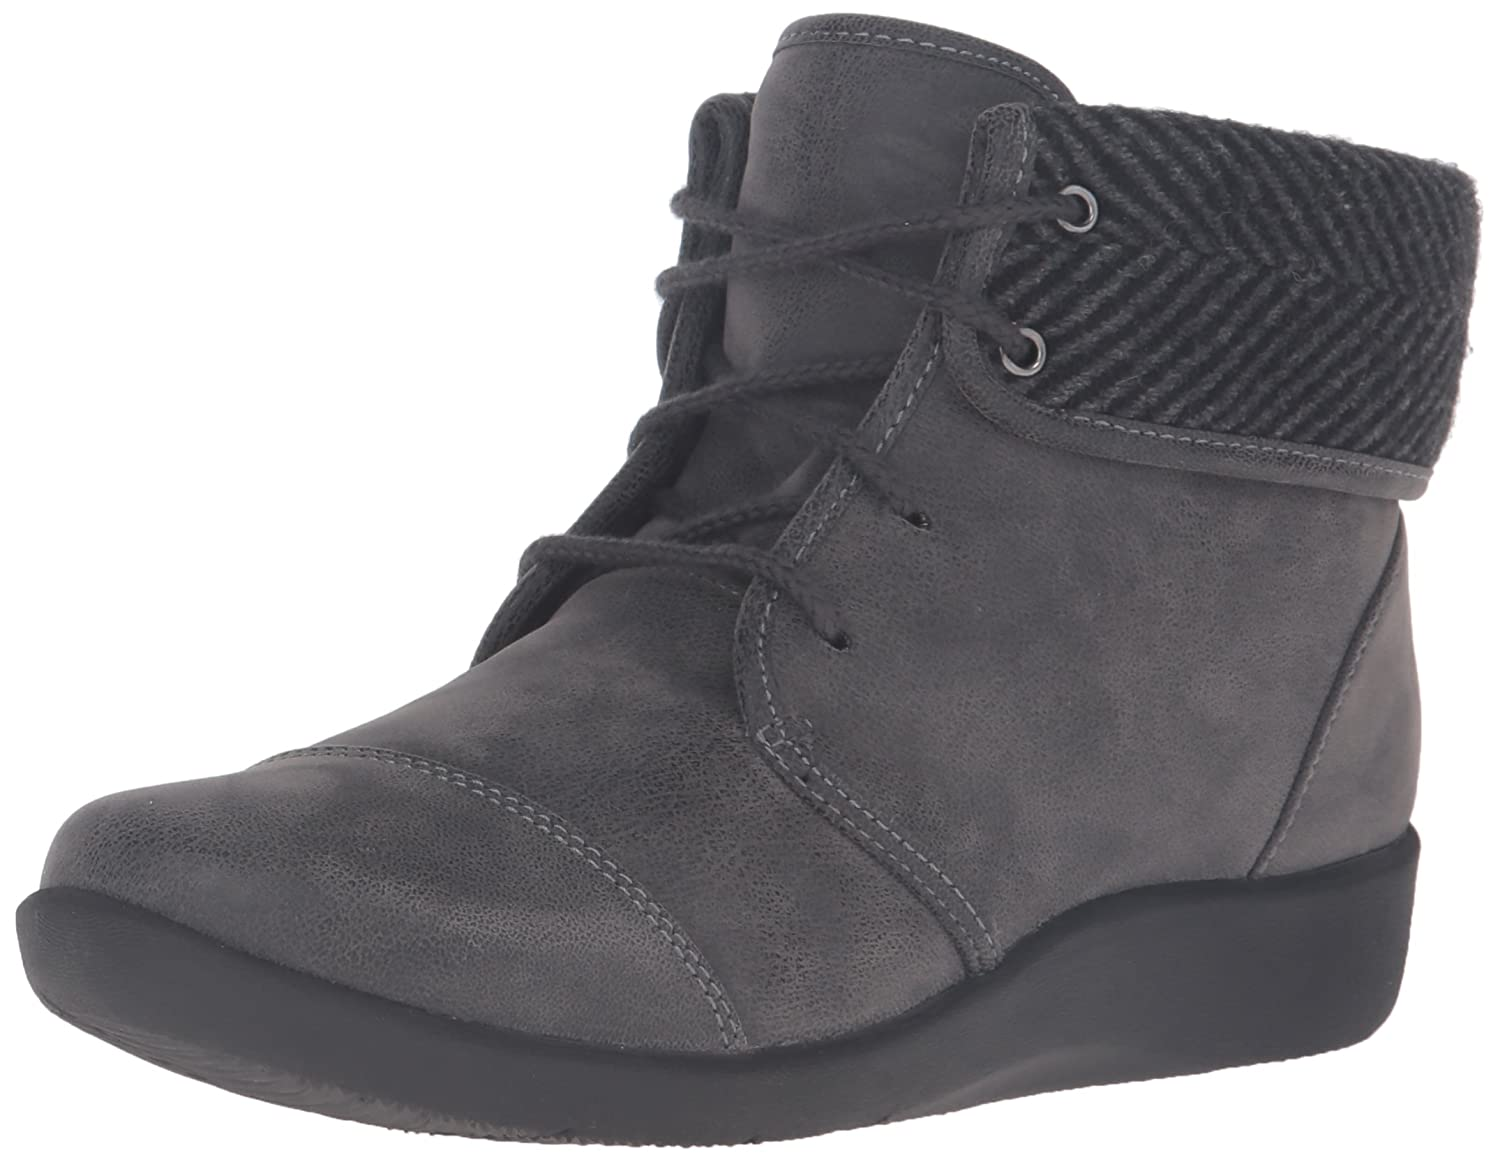 CLARKS Women's Sillian Frey Boot B01BLUIEBE 8 N US|Grey Synthetic Nubuck